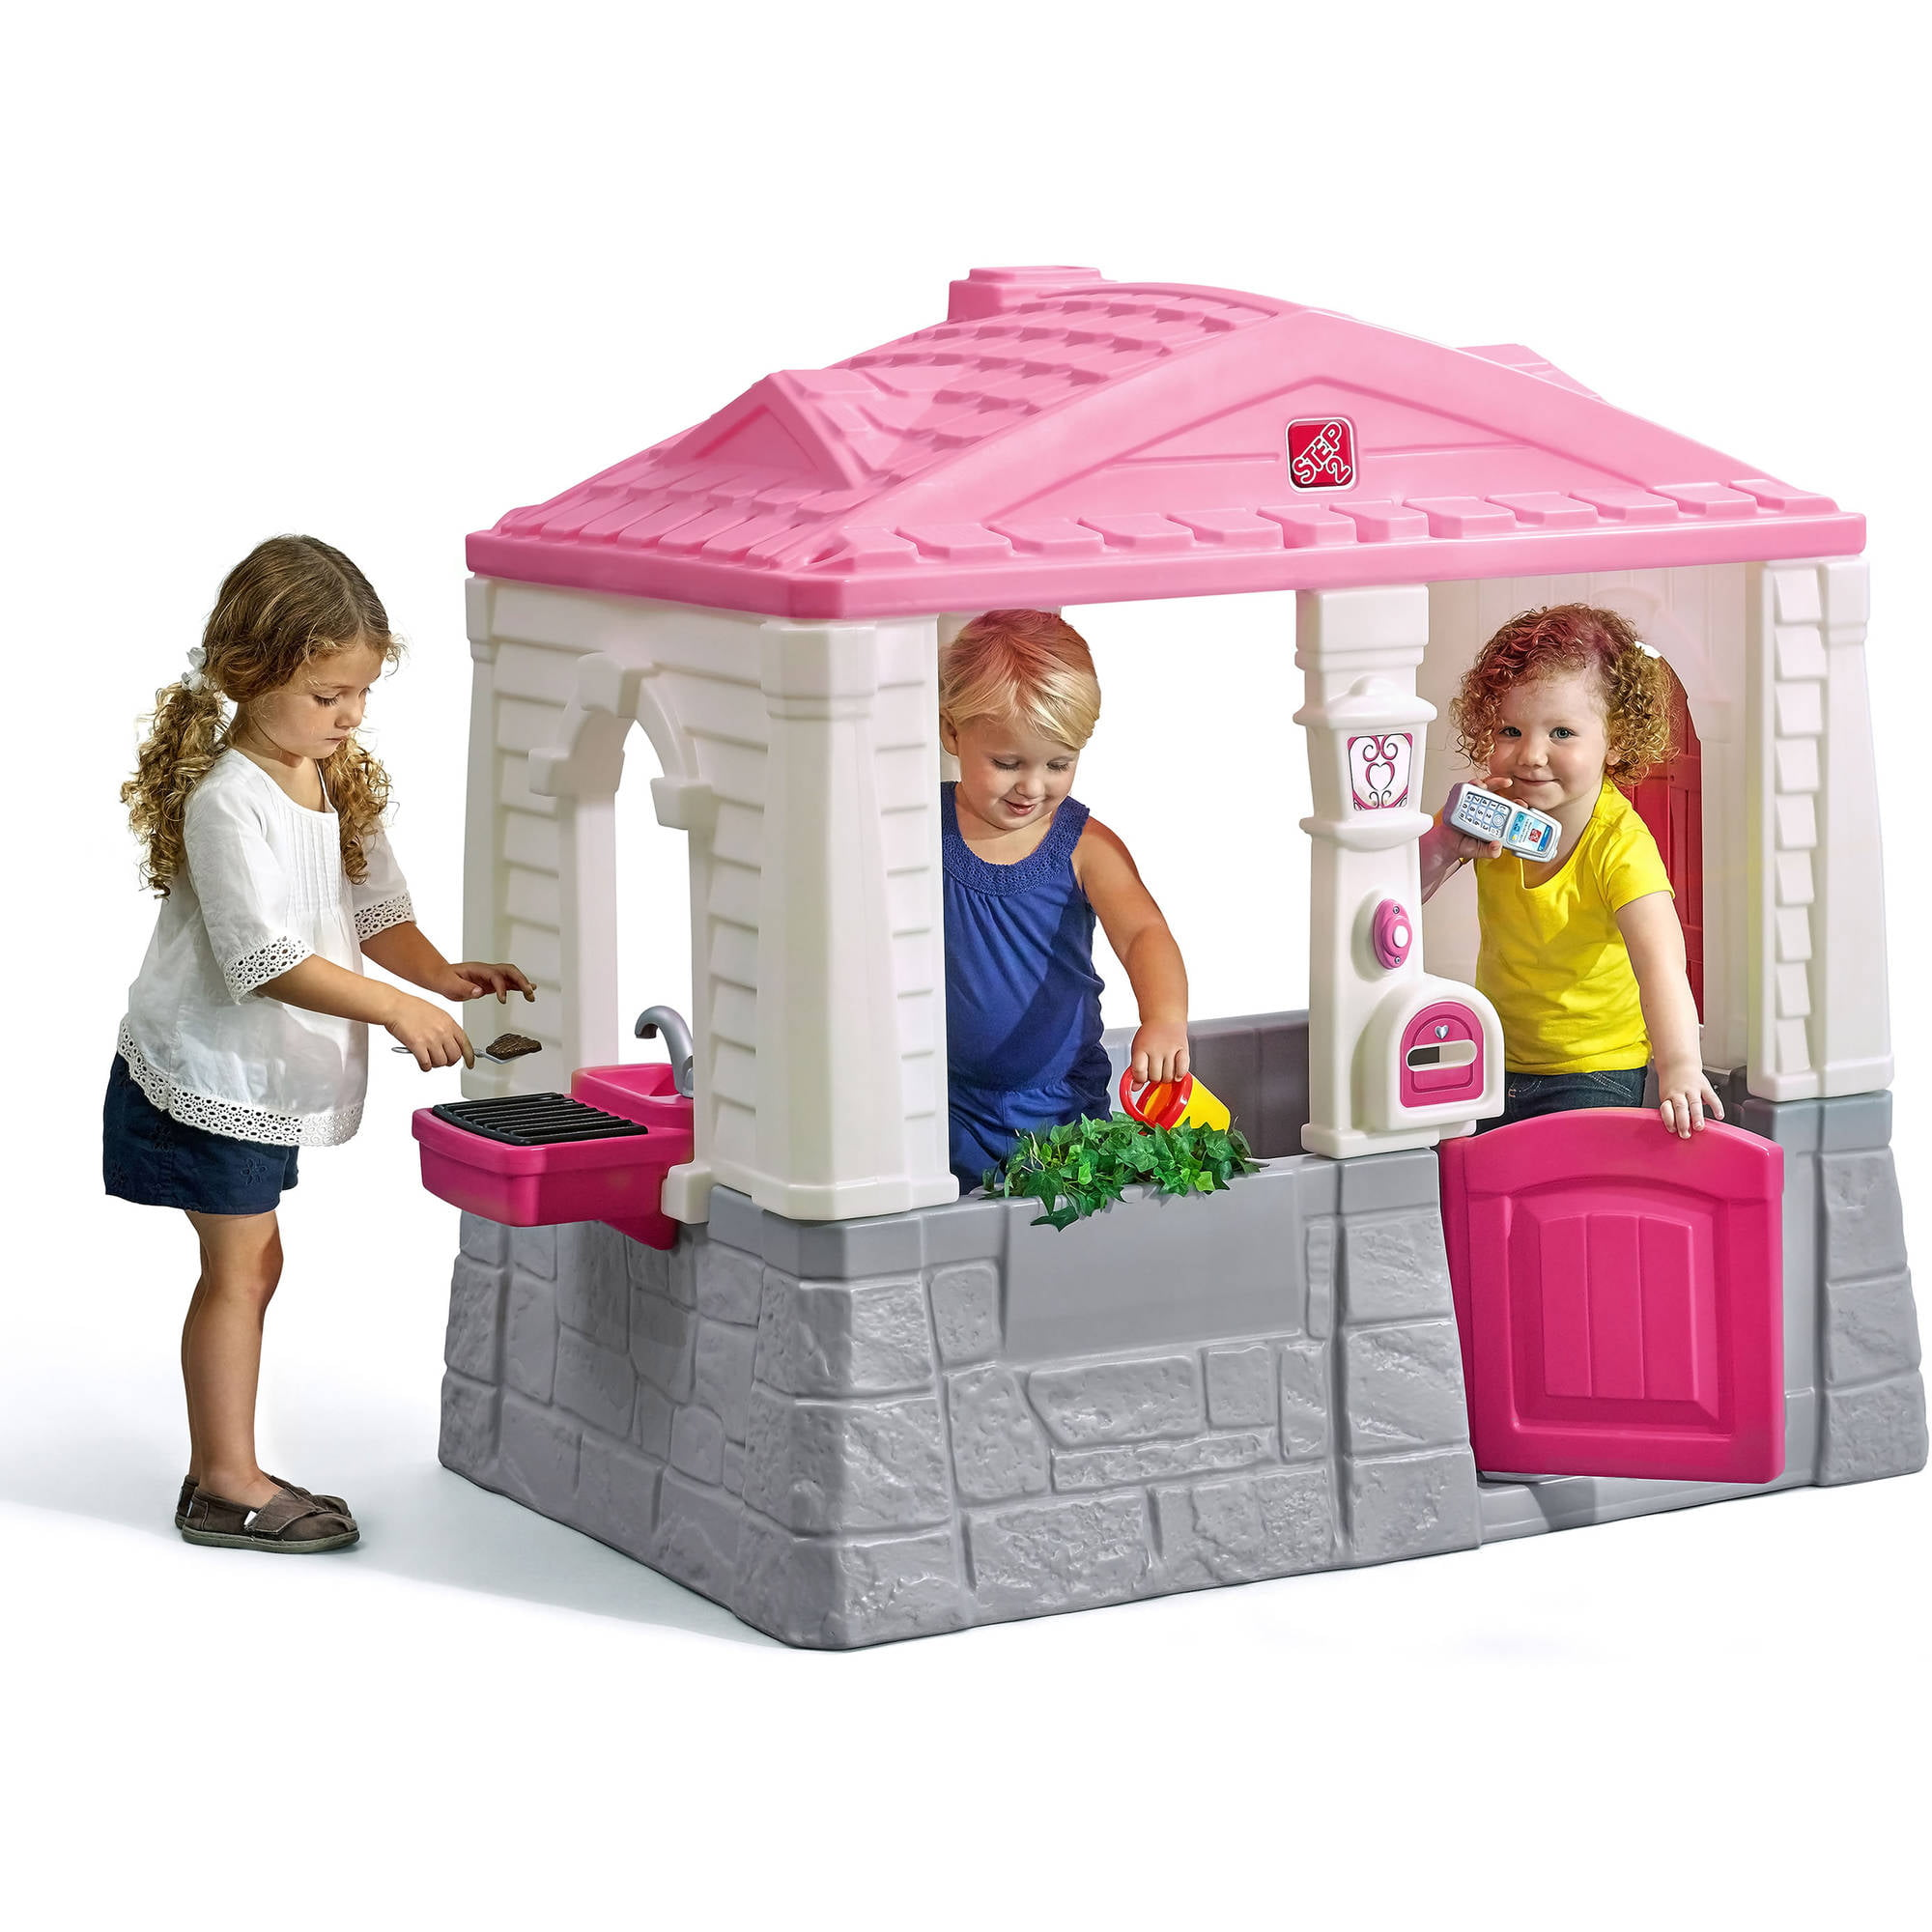 Plastic Play Kitchen Step 2 step2 neat and tidy cottage playhouse, pink - walmart